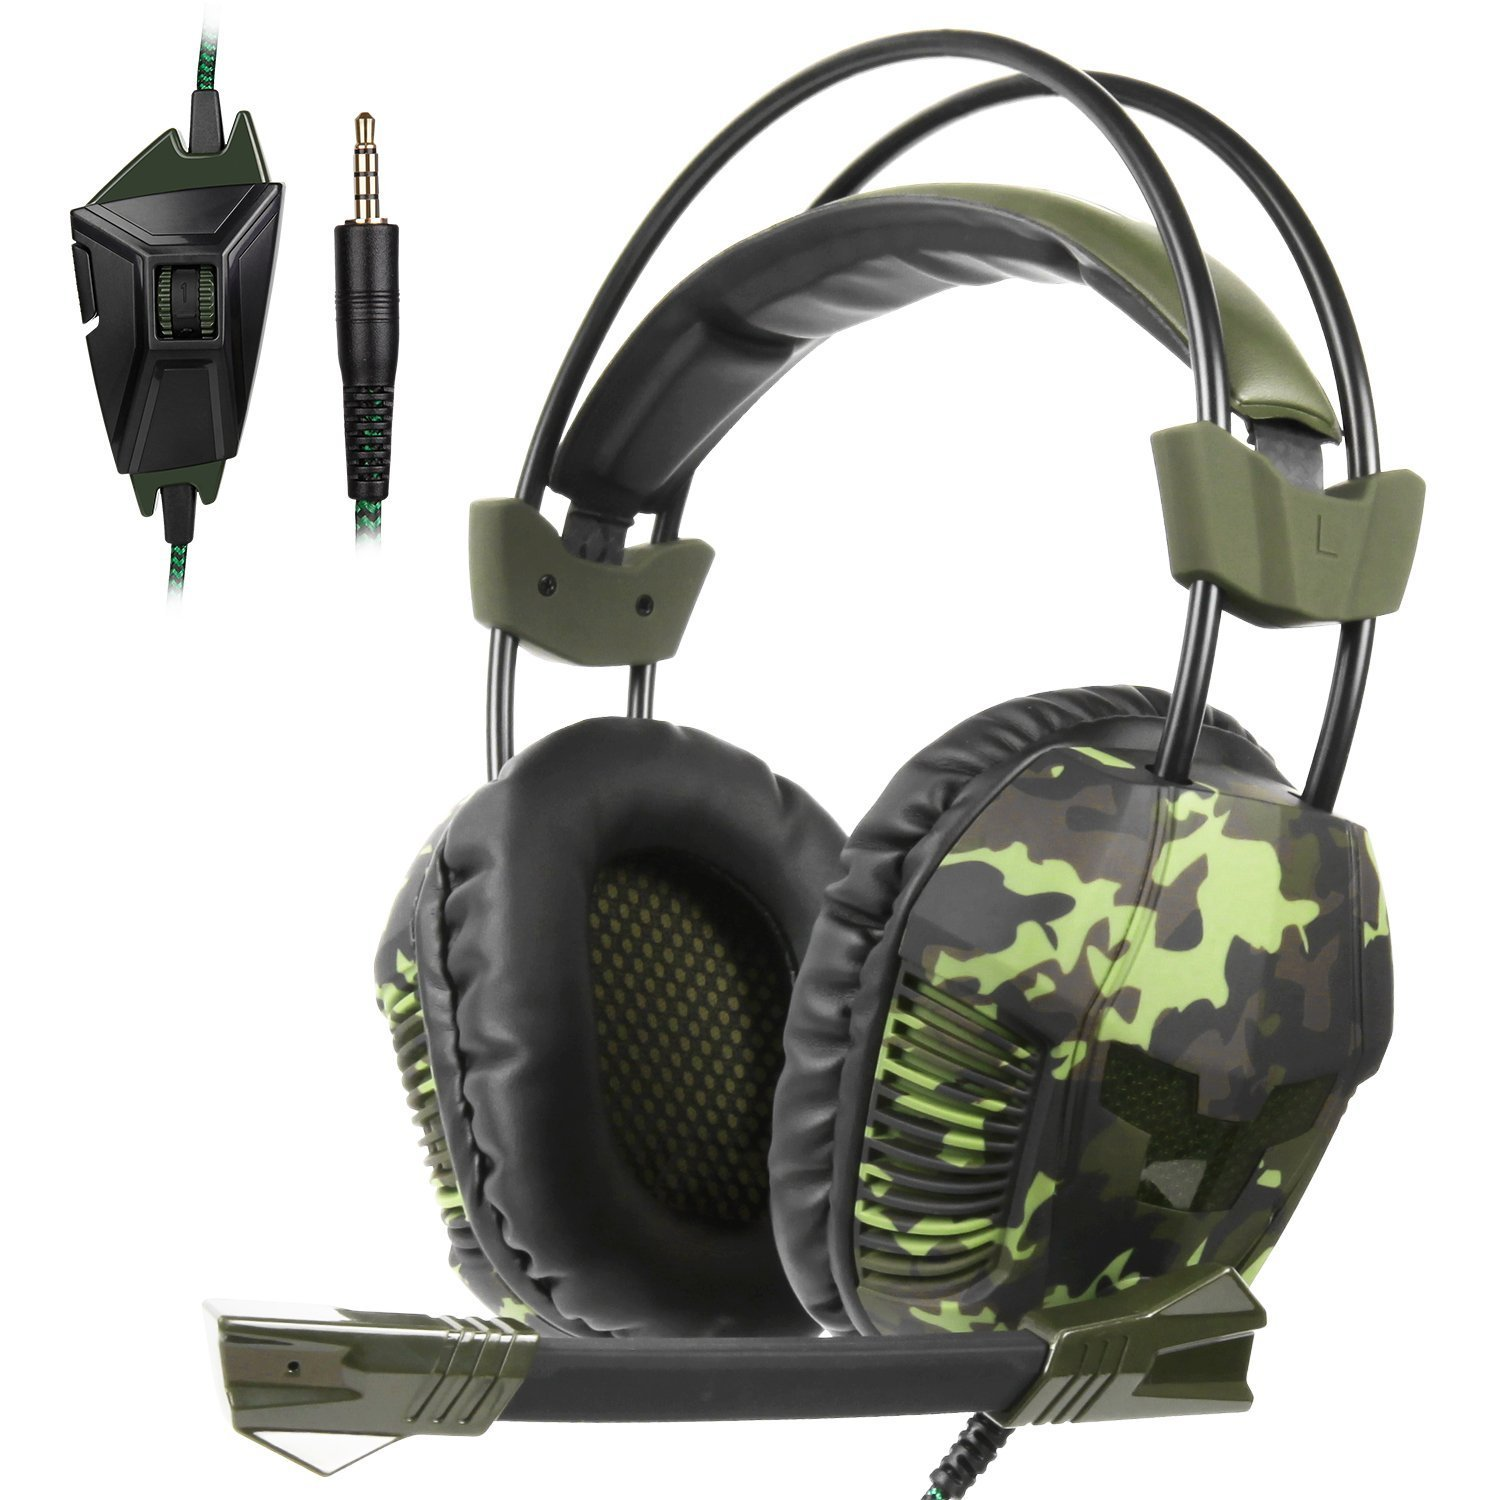 Newest PS4 SA921 Gaming Headset,SADES SA921PLUS 3.5mm Stereo Over Ear Computer Gaming Headphone with Mic for Xbox one/PS4/Mac/Tablets/Phone/PC(Army Green)